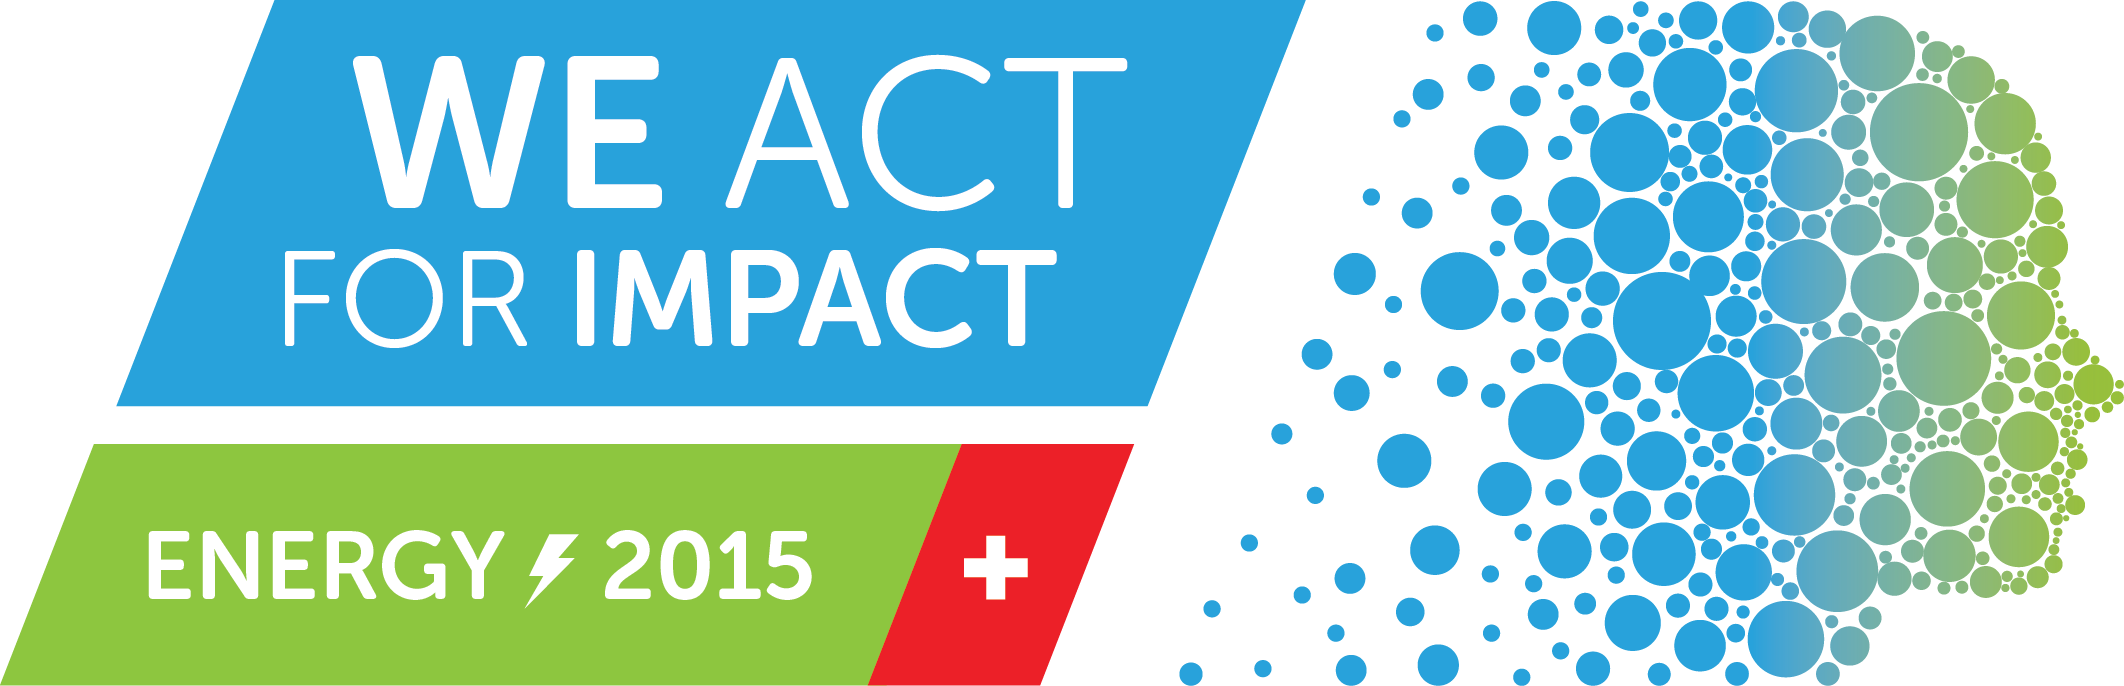 We Act for Impact Logo